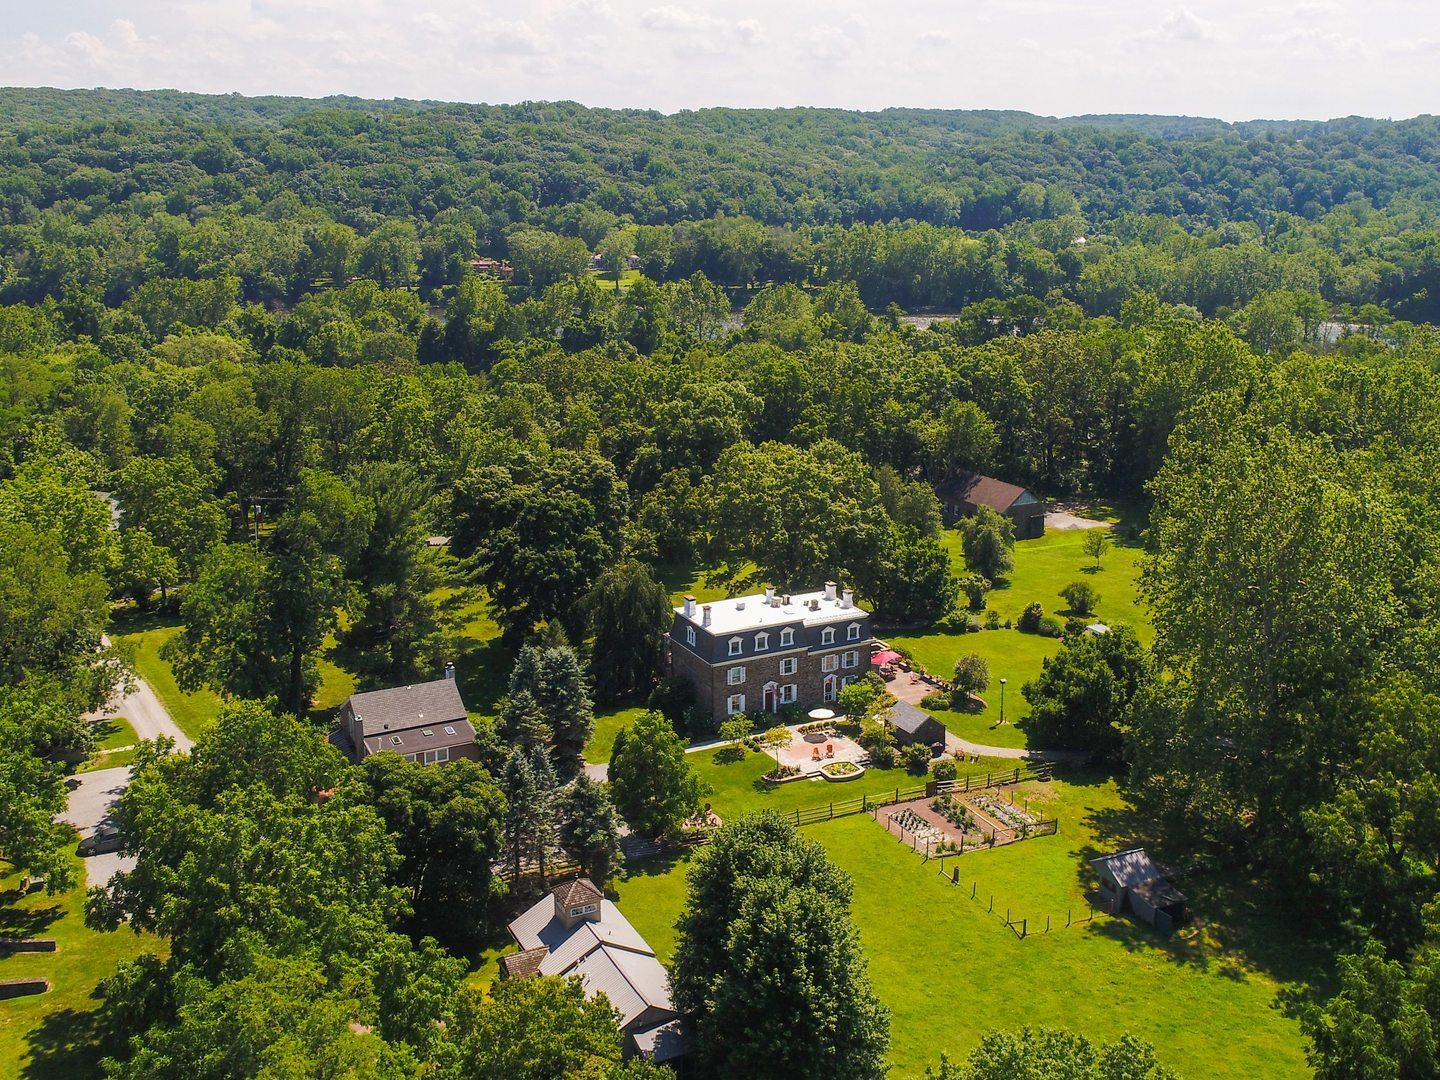 A large green field with trees in the background at Woolverton Inn.